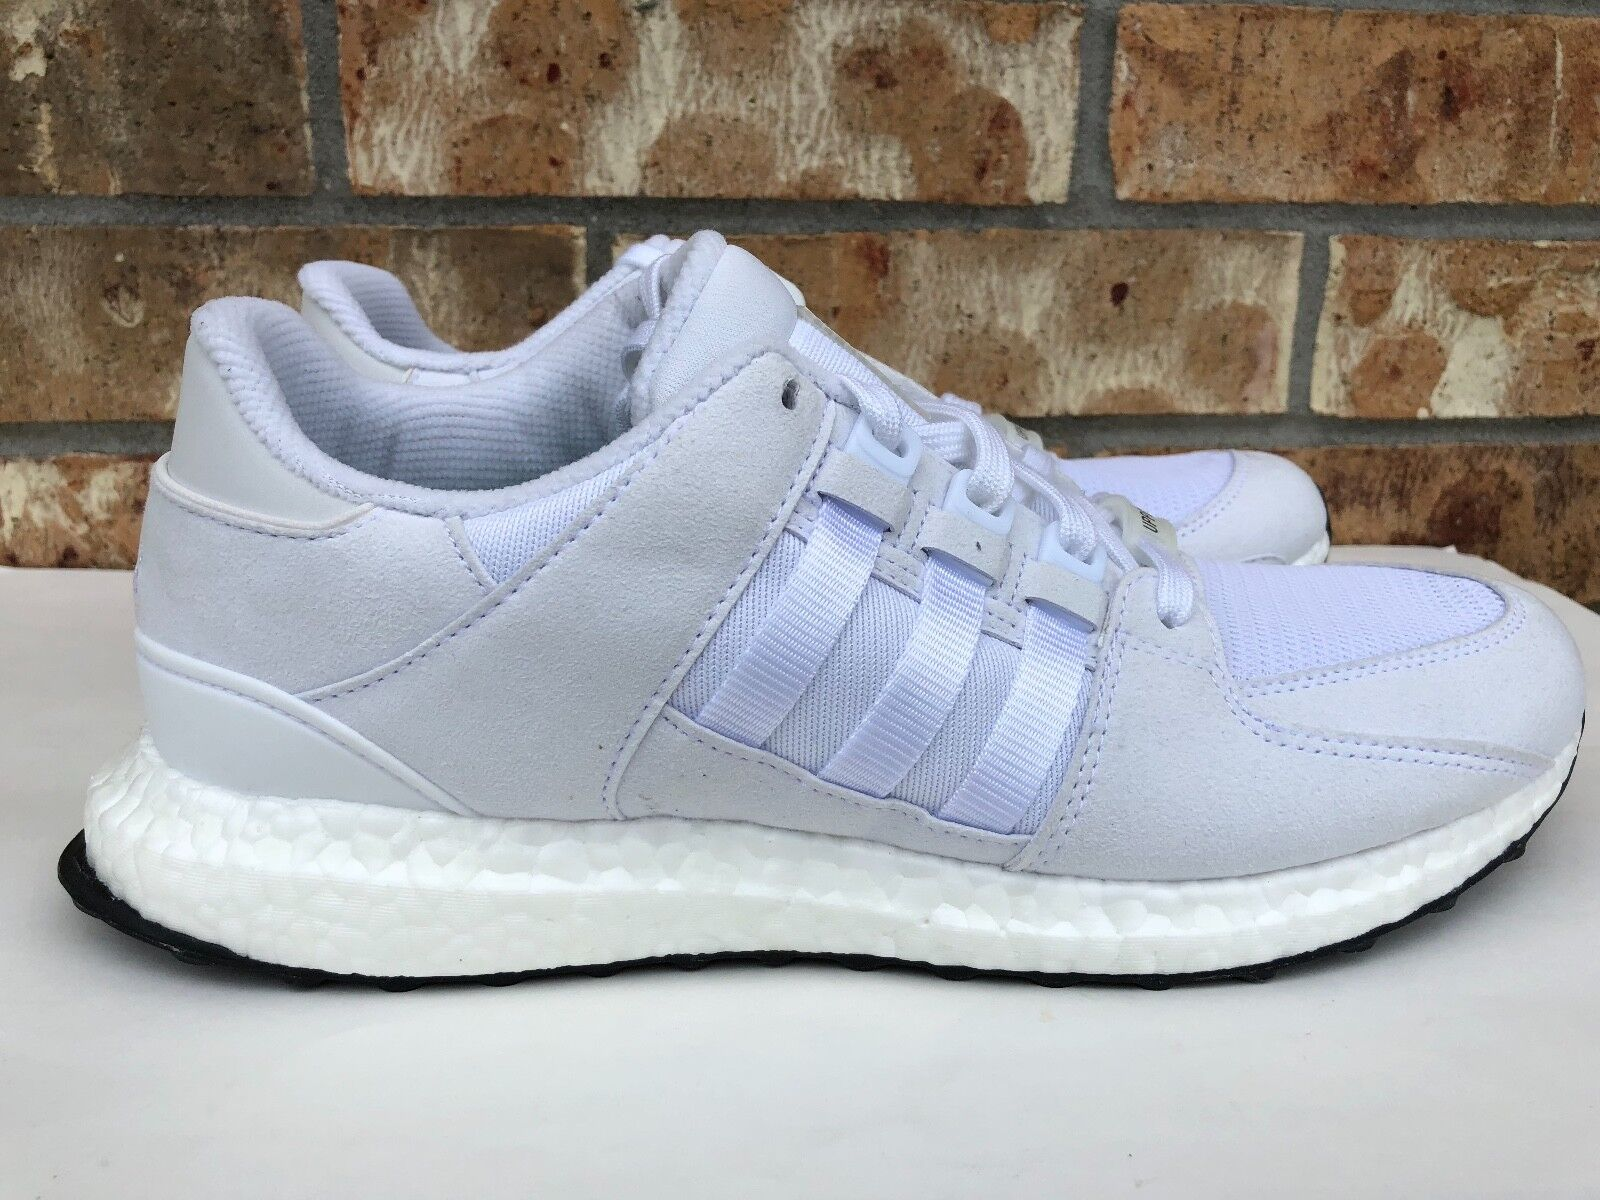 Men's Adidas Equipment Support EQT 93 16 Boost White Running shoes SZ 11 S79921